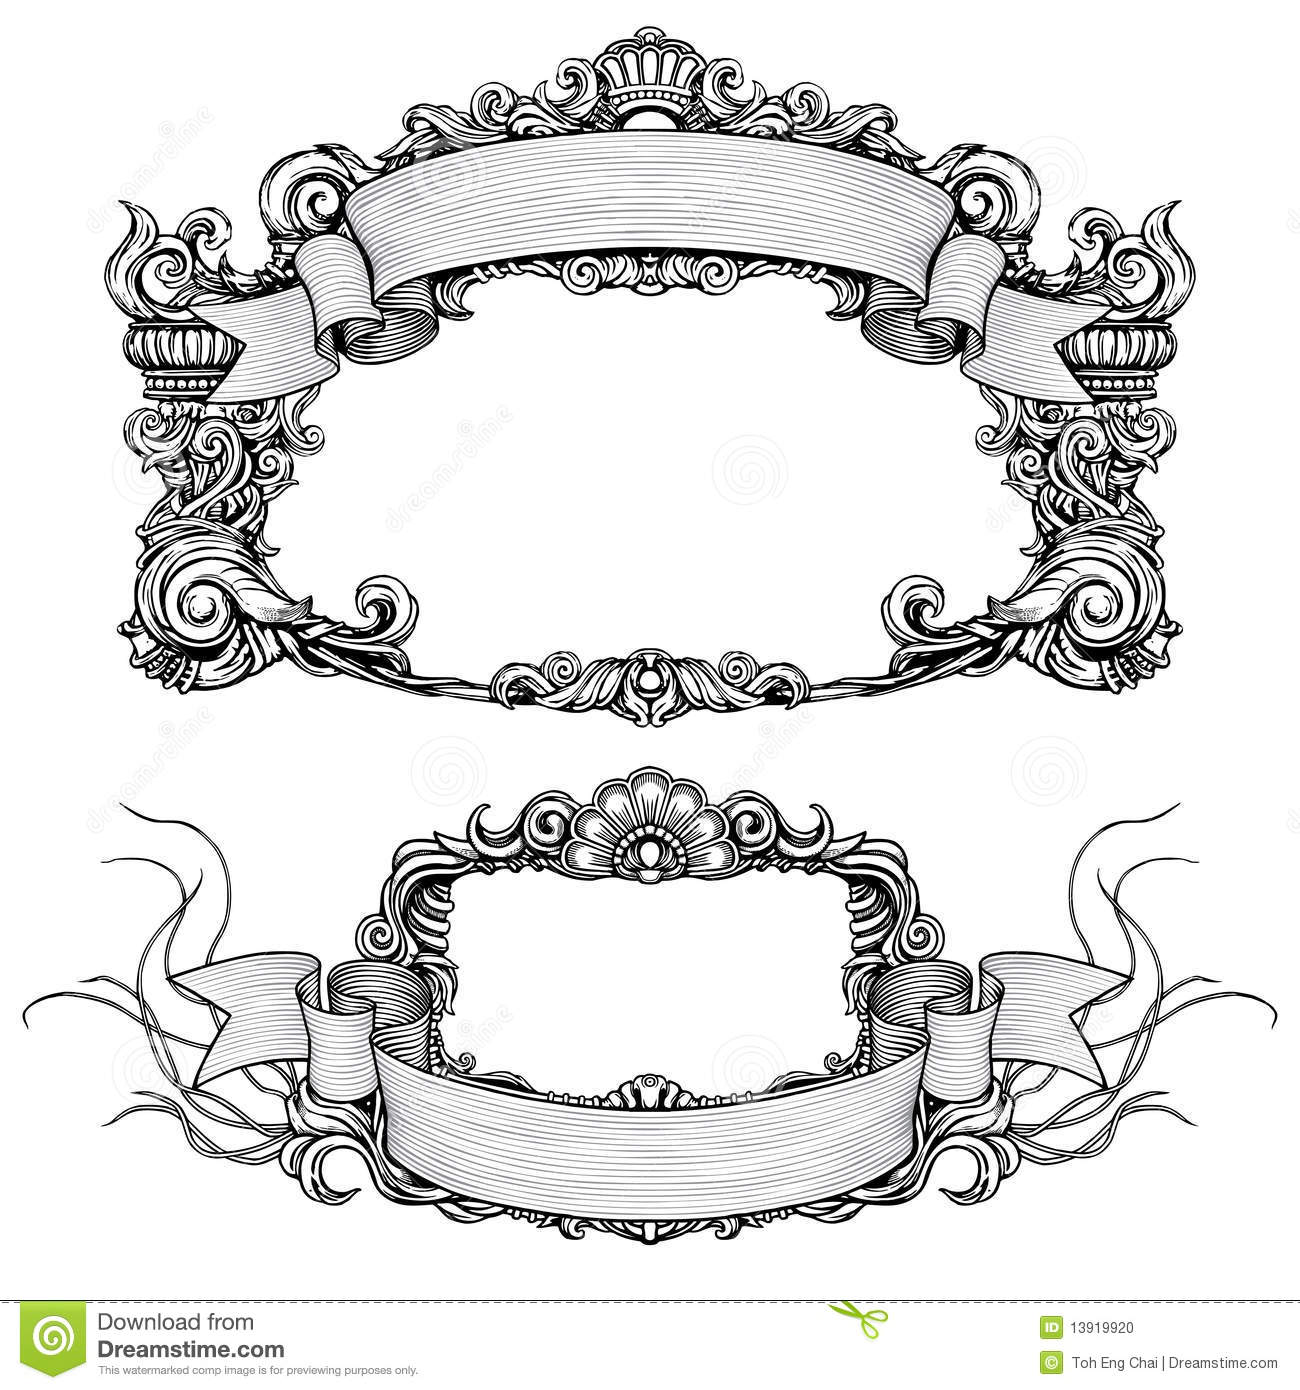 Antique Scroll Design: Vintage Ornate Frames With Scroll Stock Photo